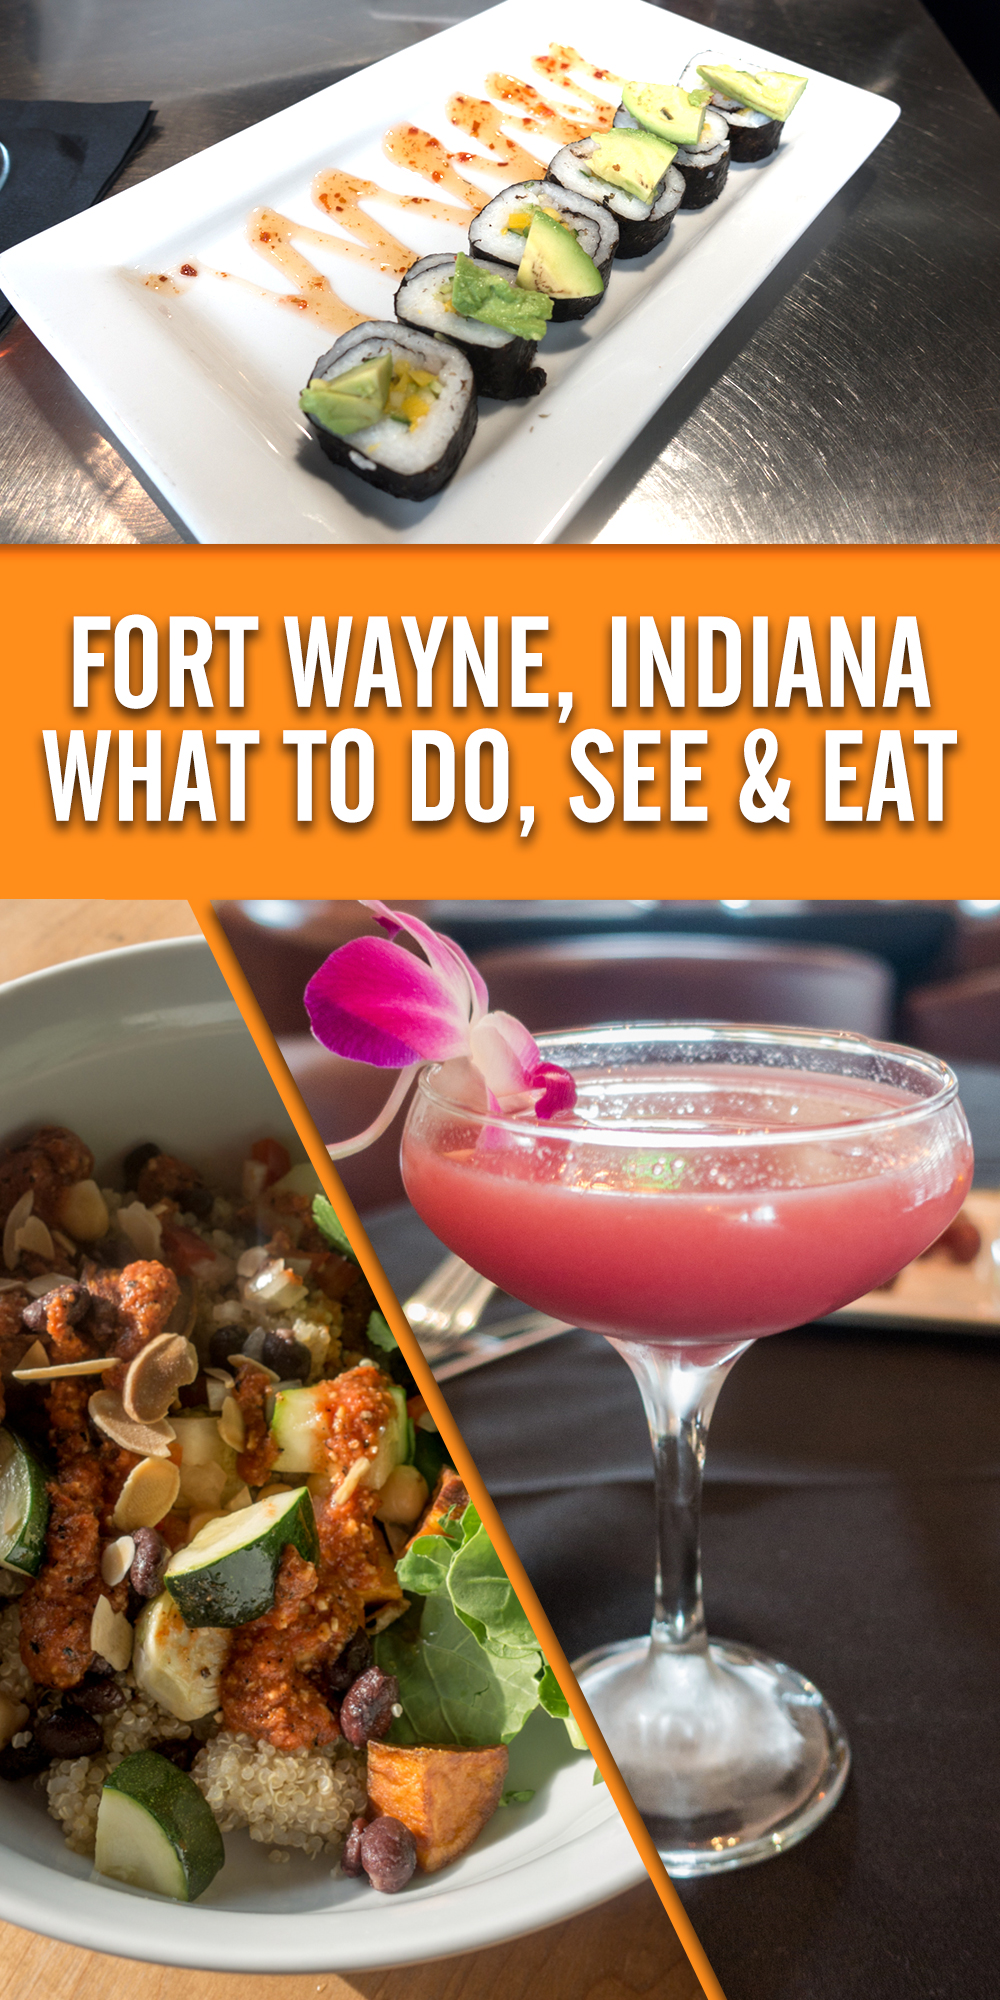 Fort Wayne, Indiana: What to Do, See & Eat in this great Midwest city.